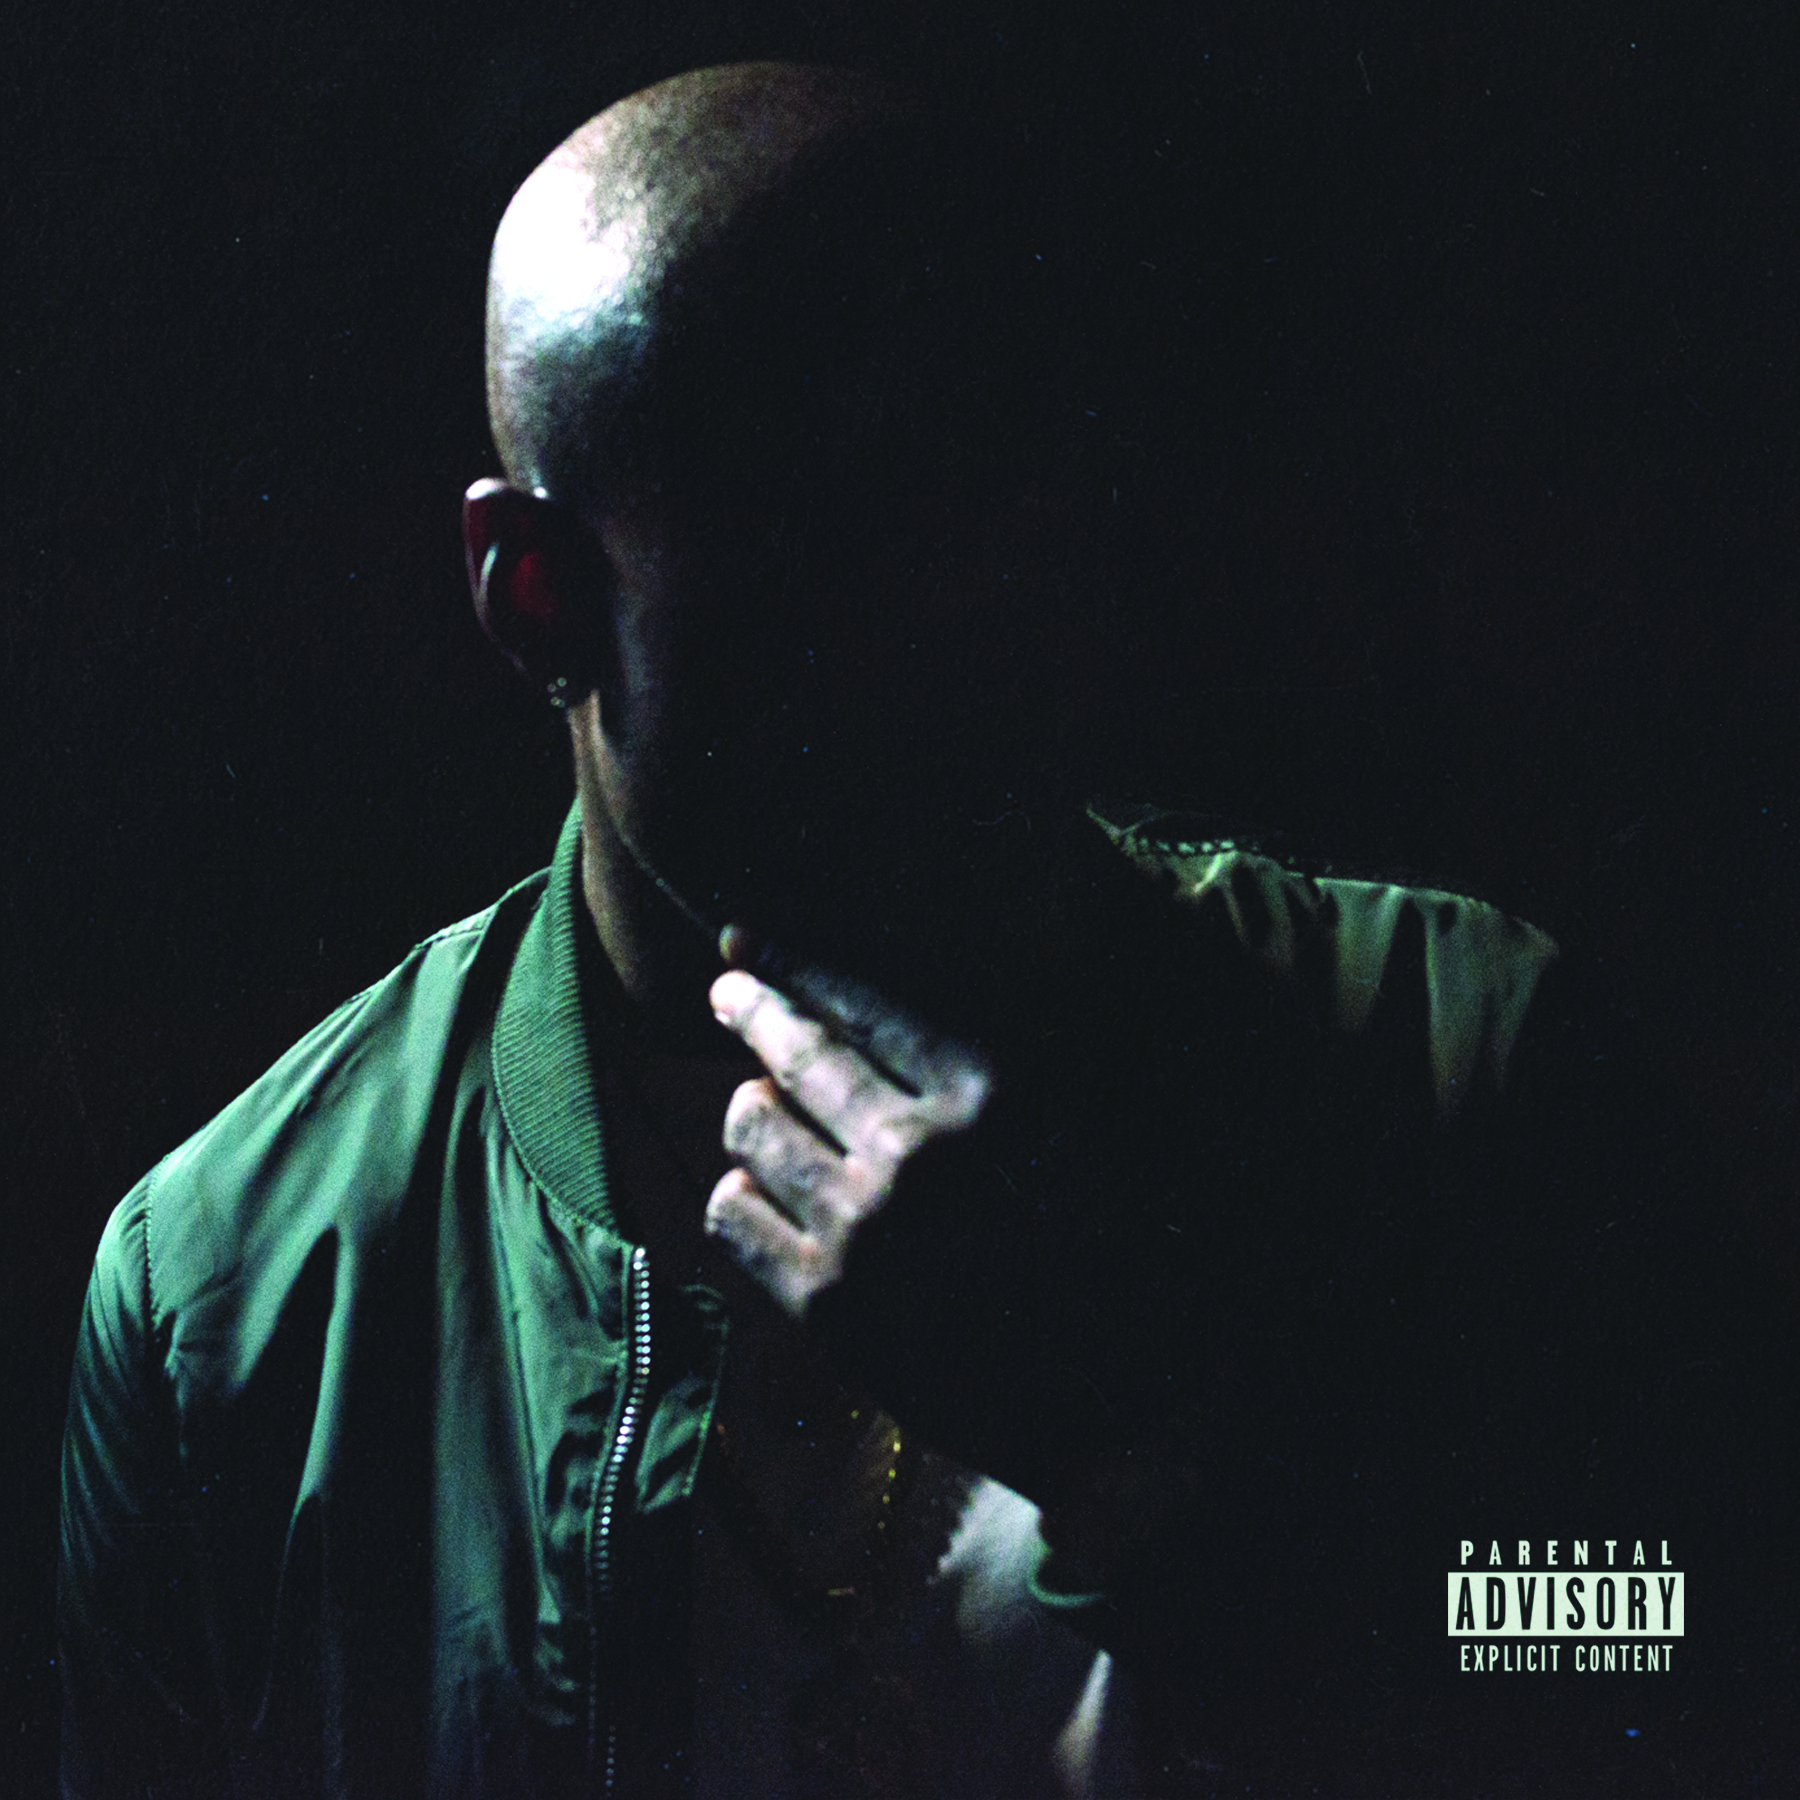 14. Freddie Gibbs - Shadow of A Doubt